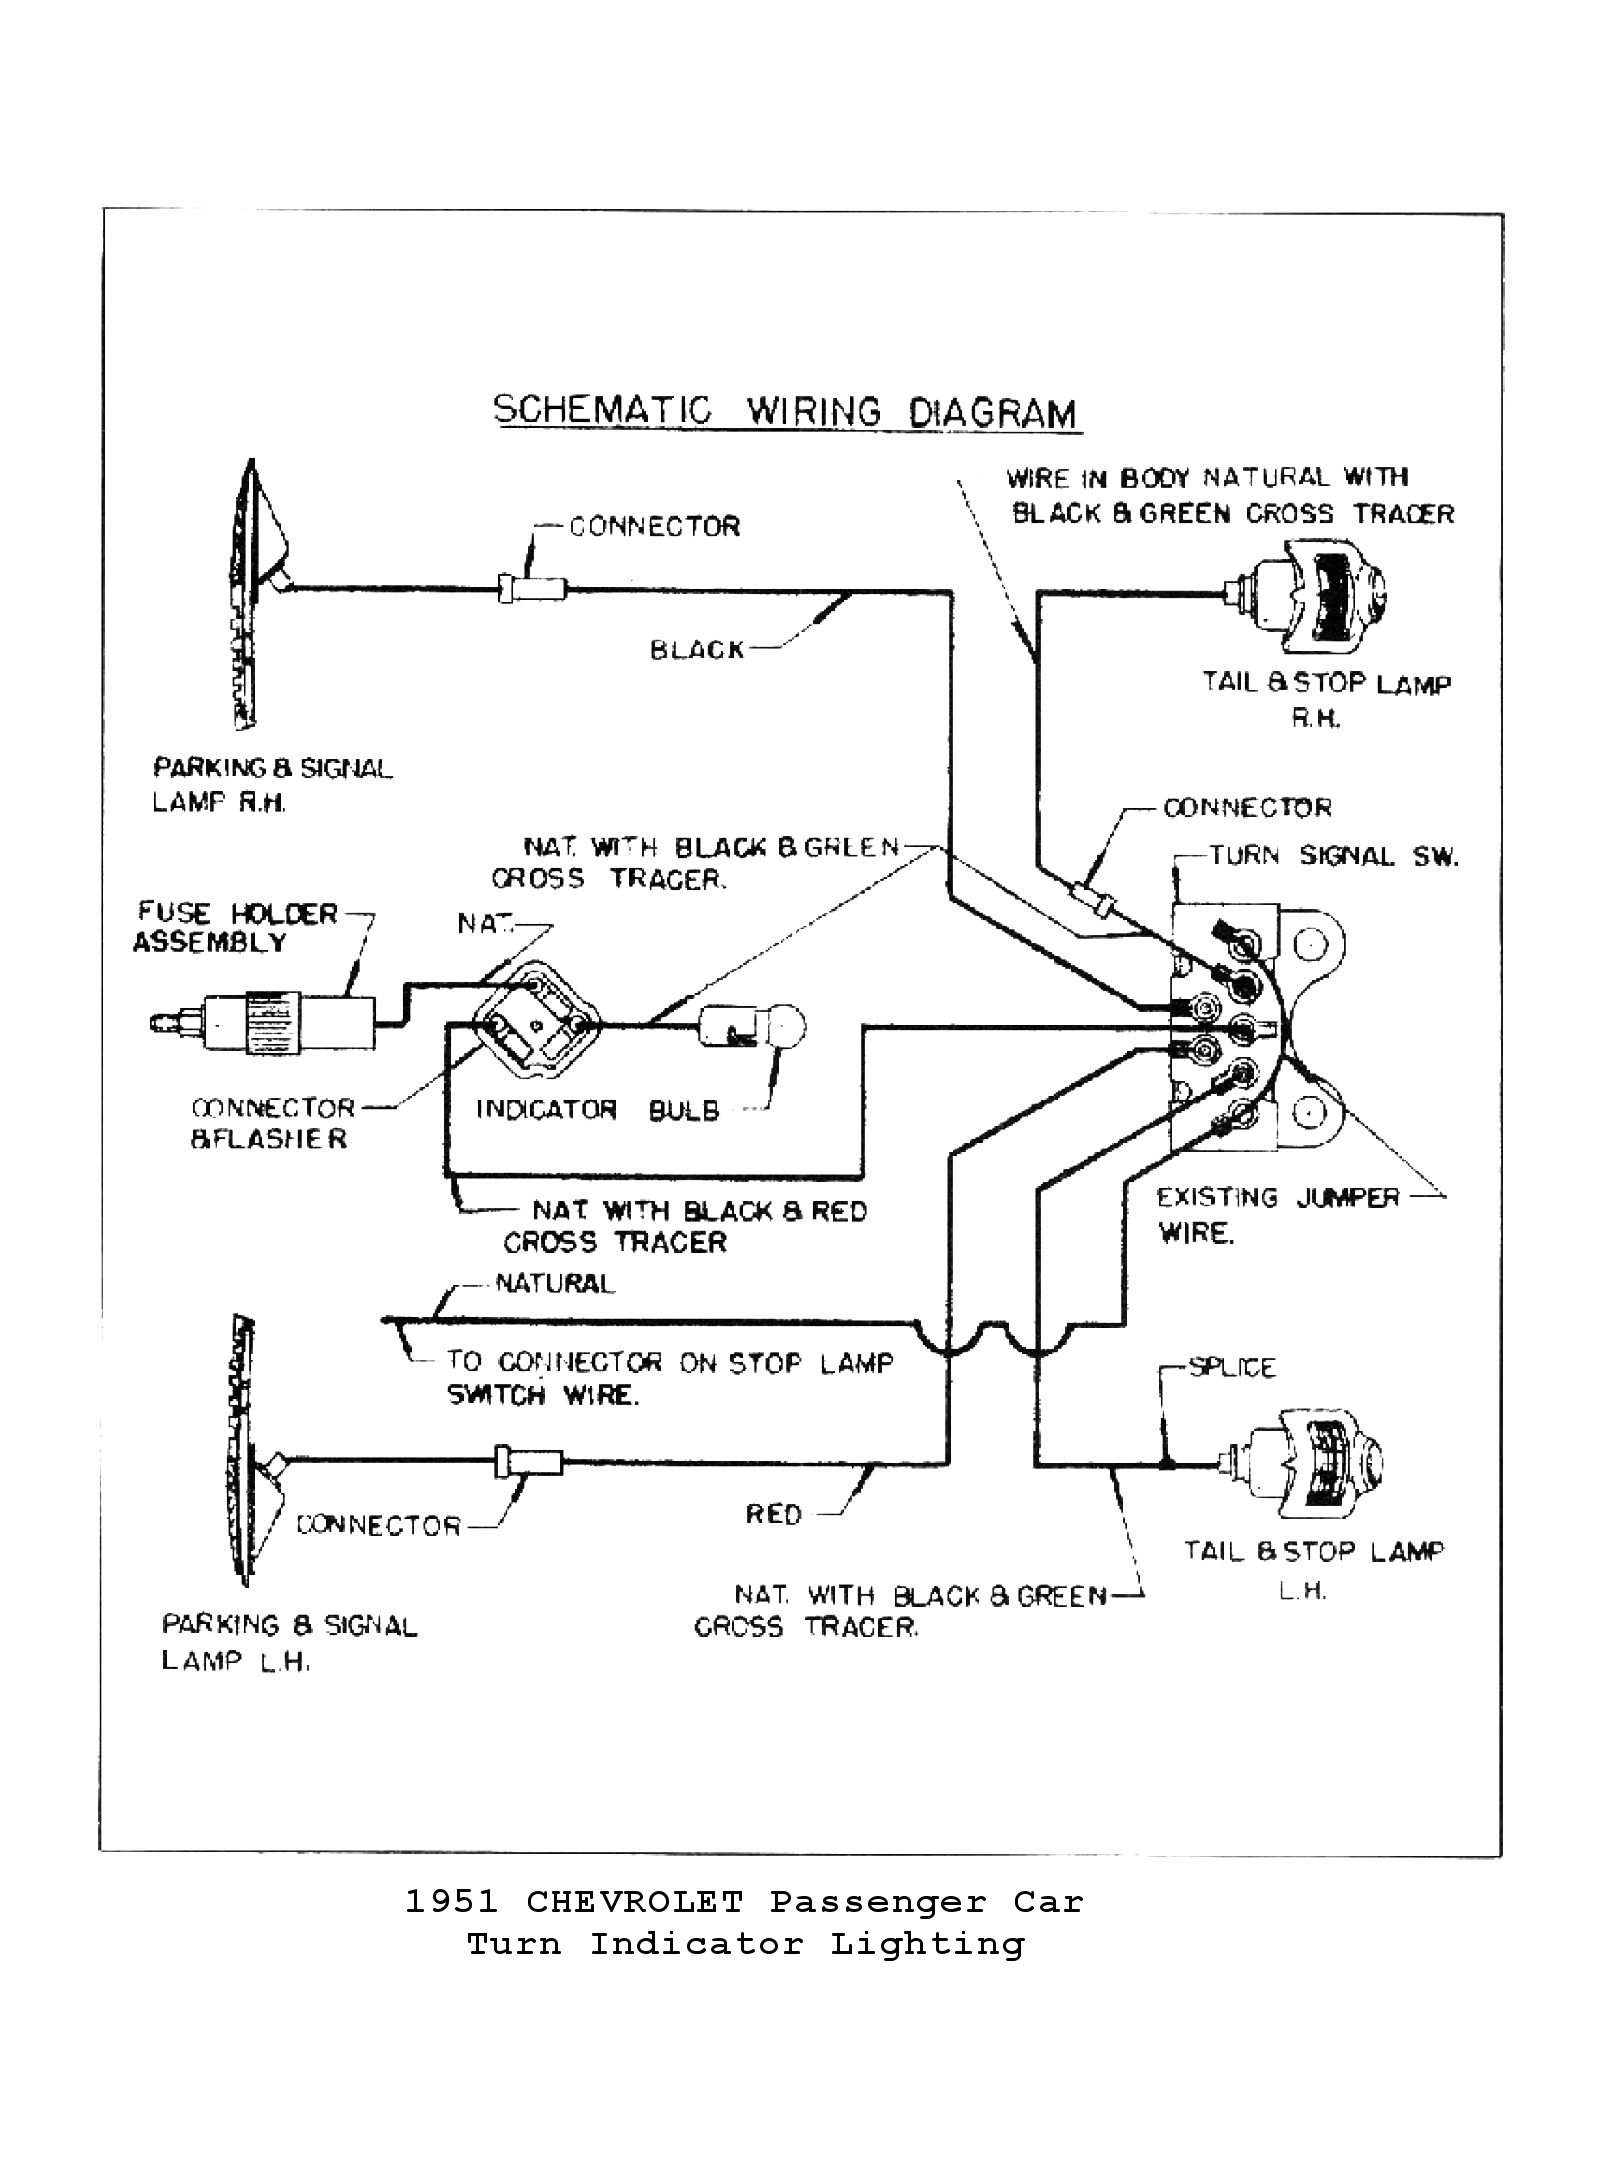 1955 chevy wire diagram wiring diagrams rh boltsoft net 1956 Bel Air Wiring Diagram 1956 International Pickup Wiring Diagram